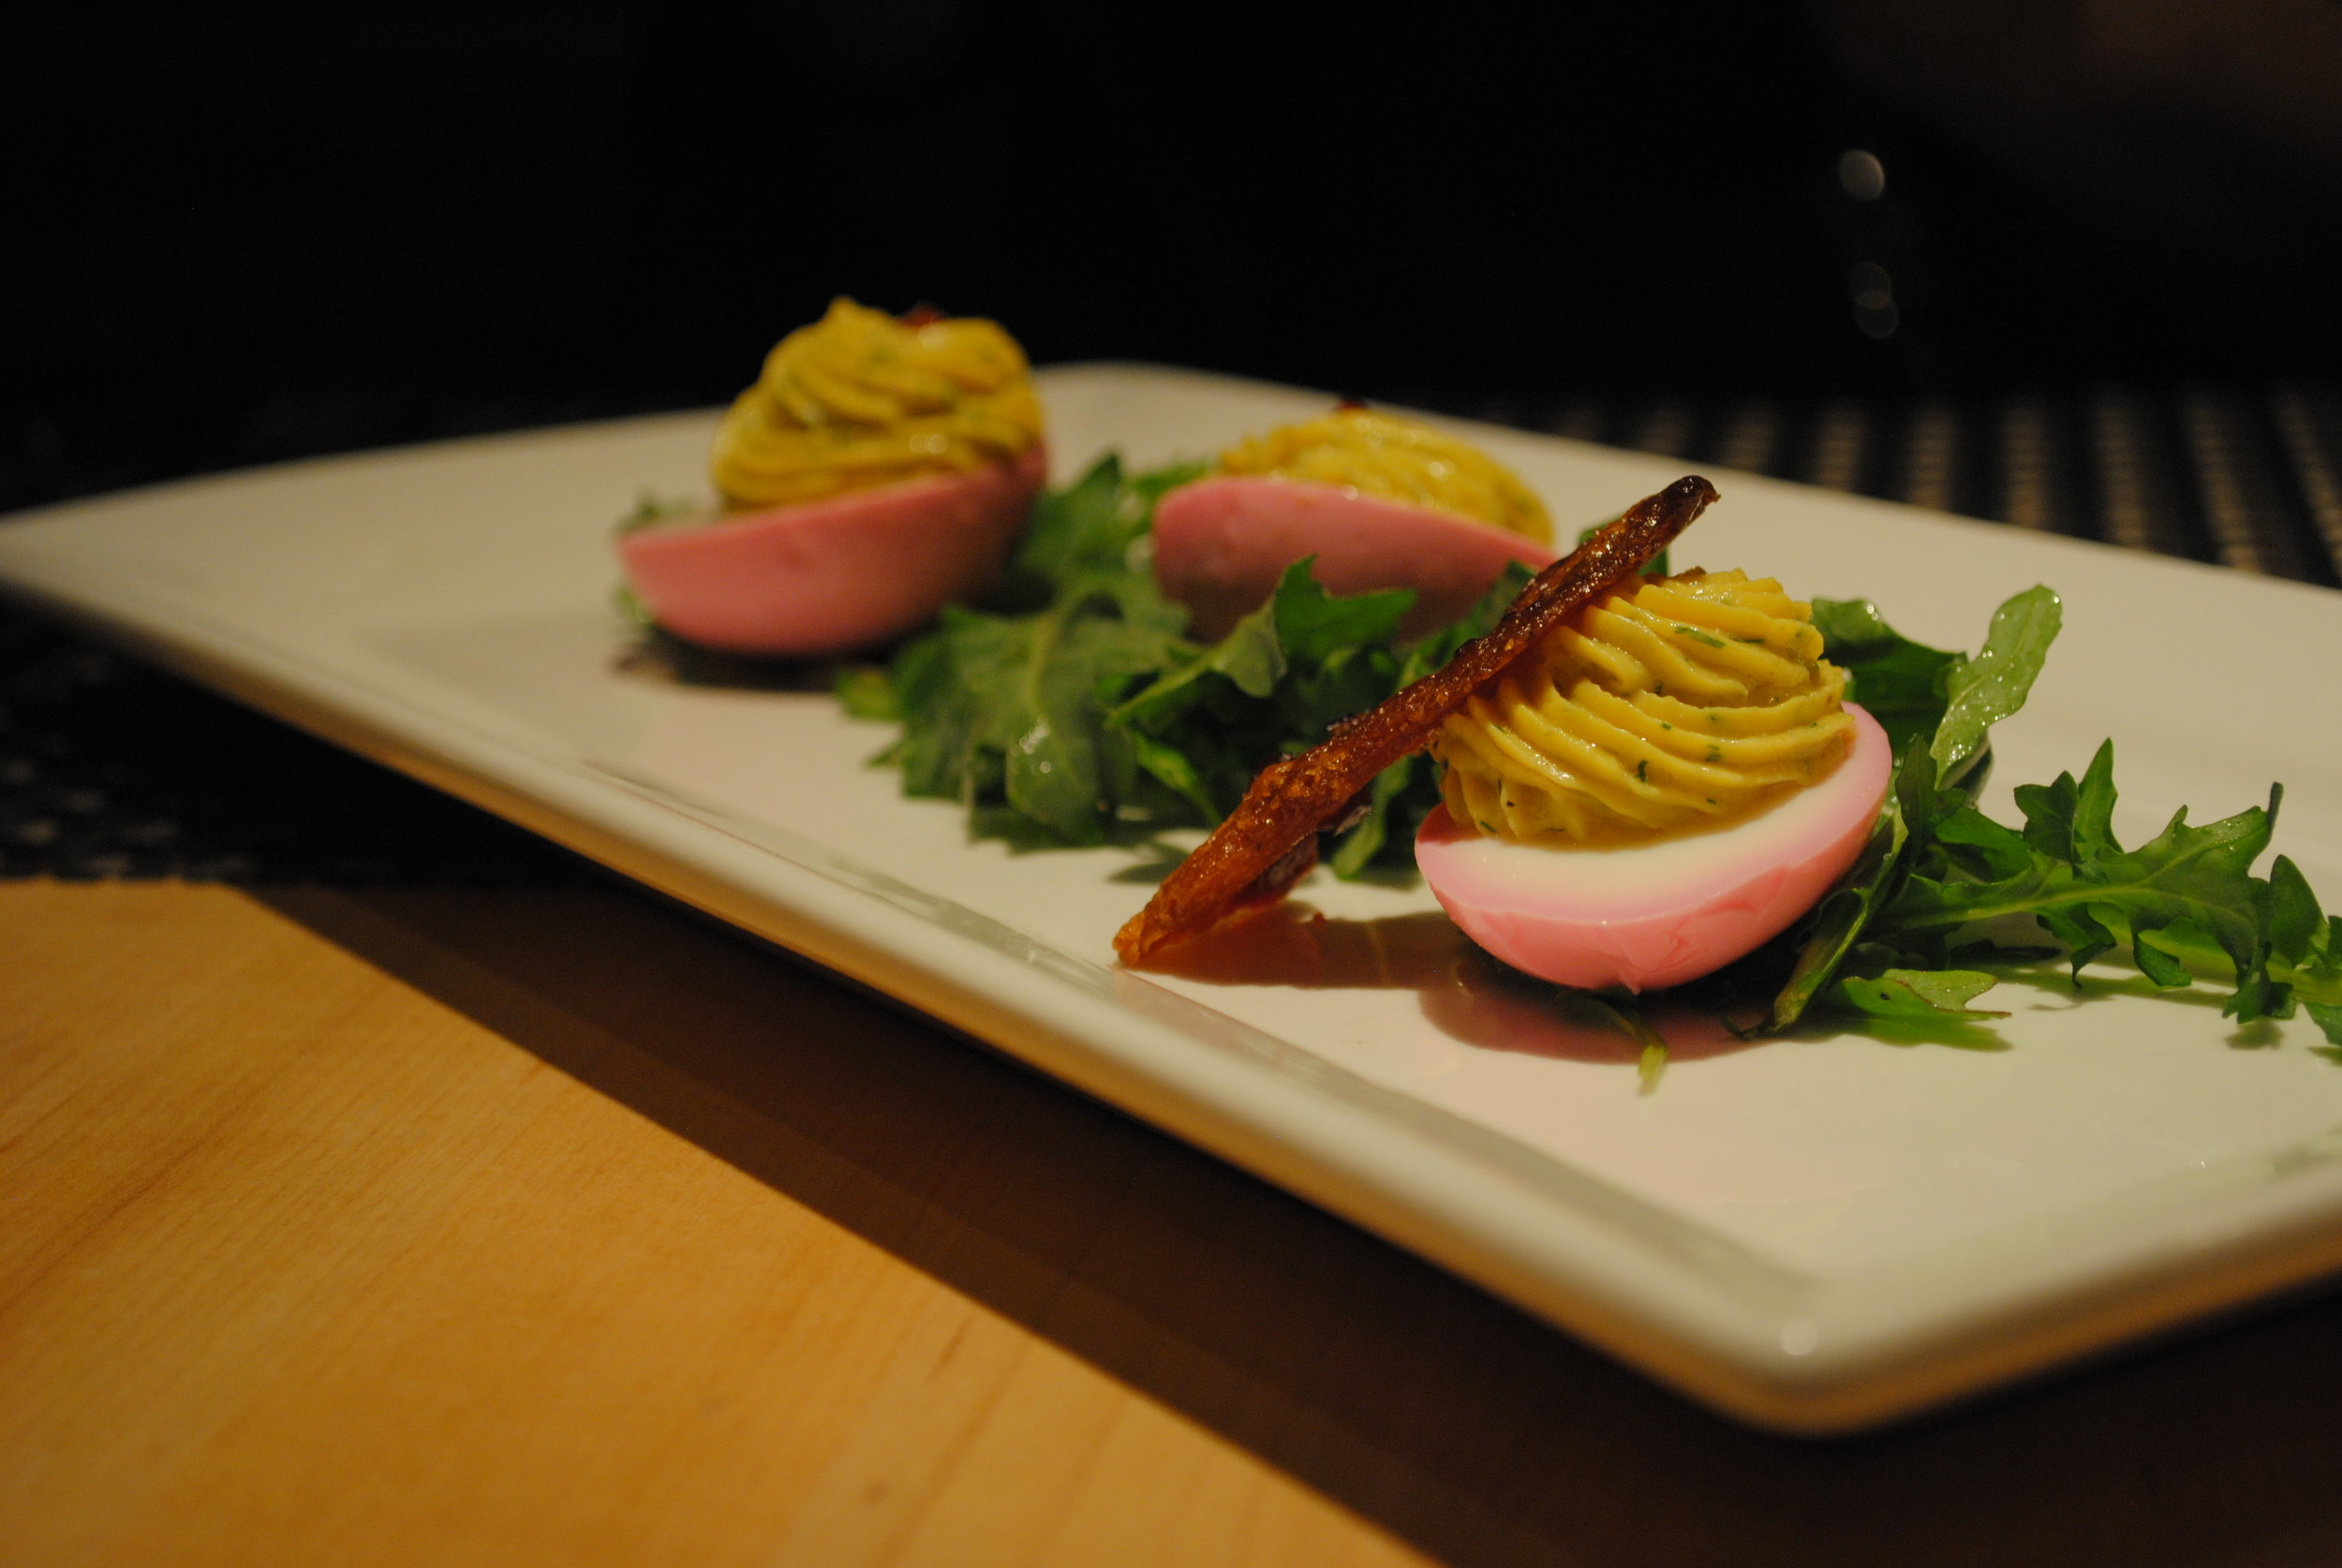 Pickled Farm Deviled Eggs - beet pickled eggs, Benton's candied bacon